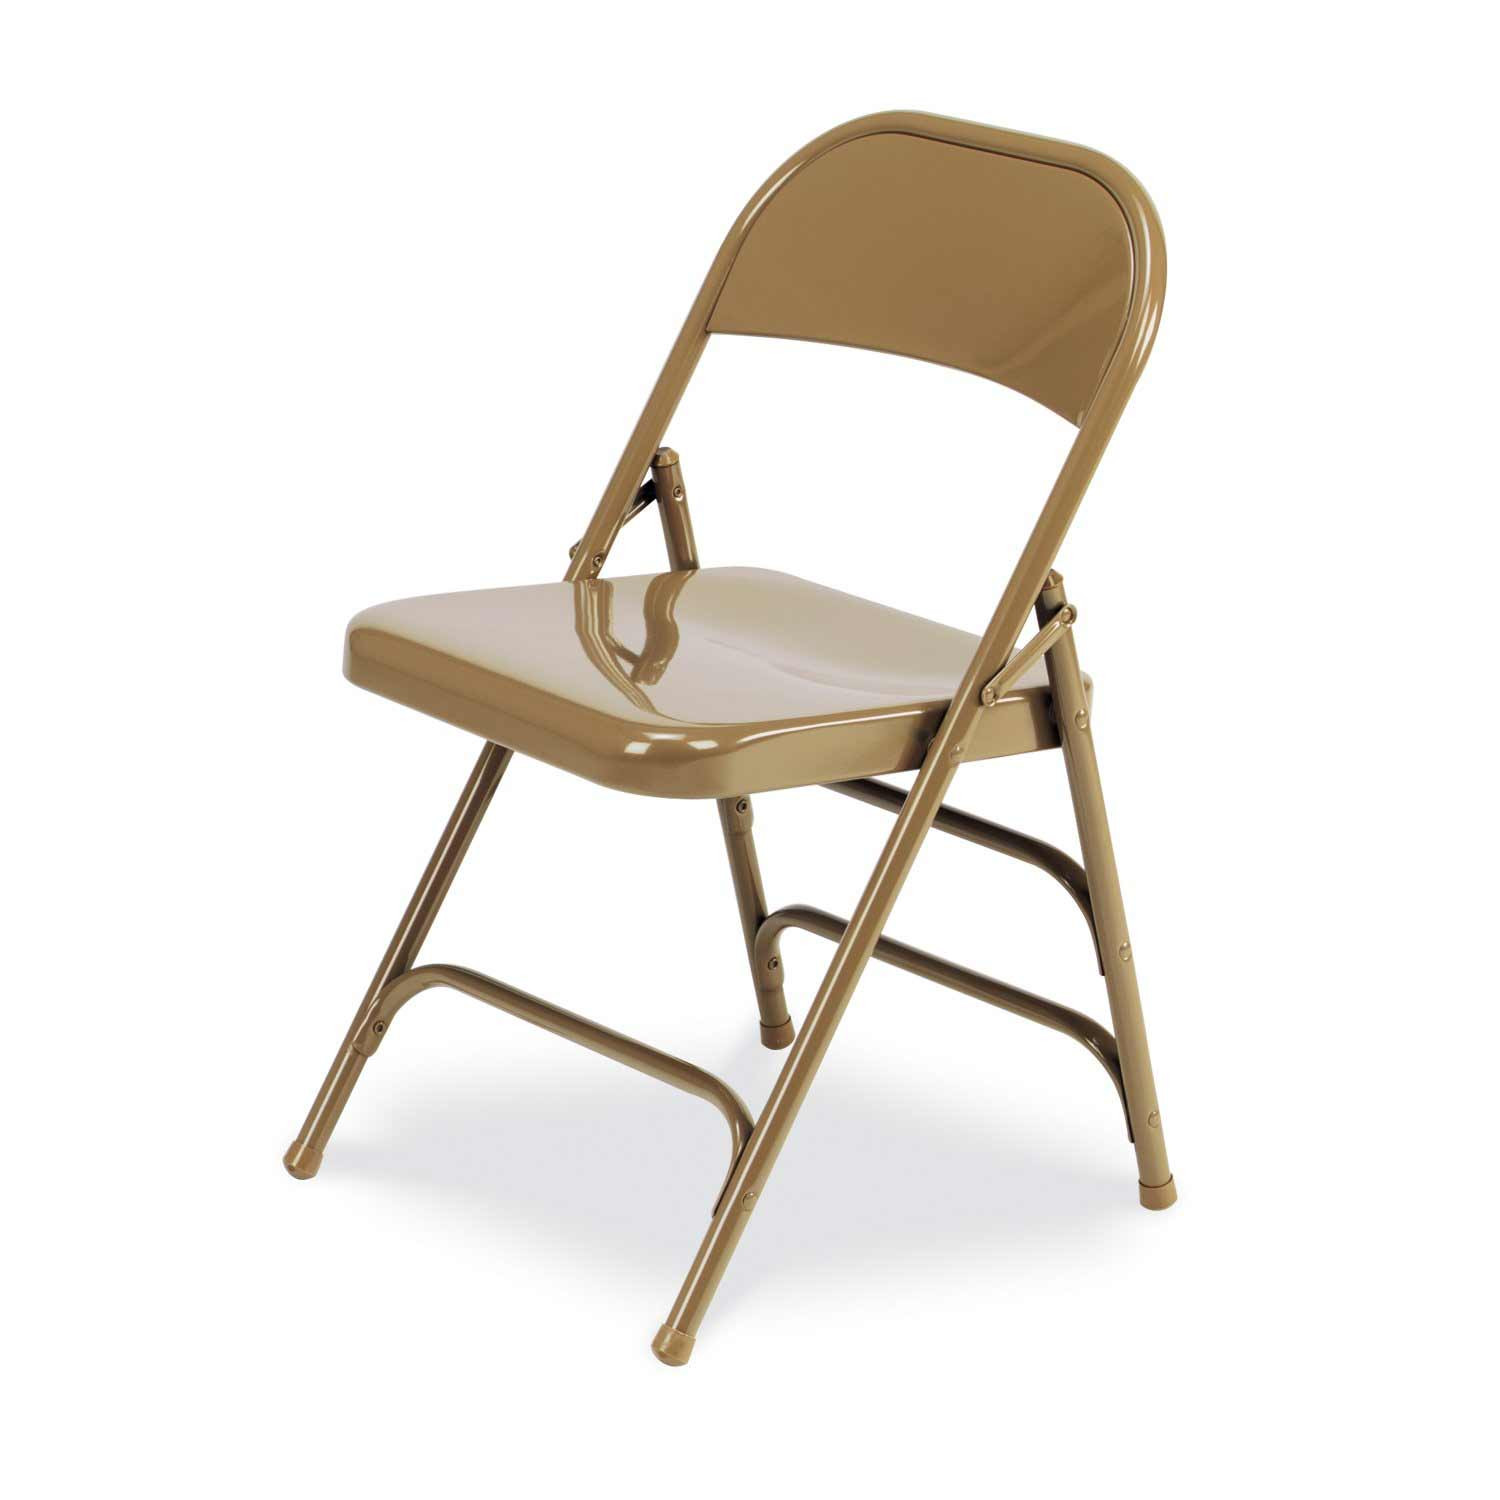 Best ideas about Metal Folding Chair . Save or Pin The Eighth Day Book Report Now.